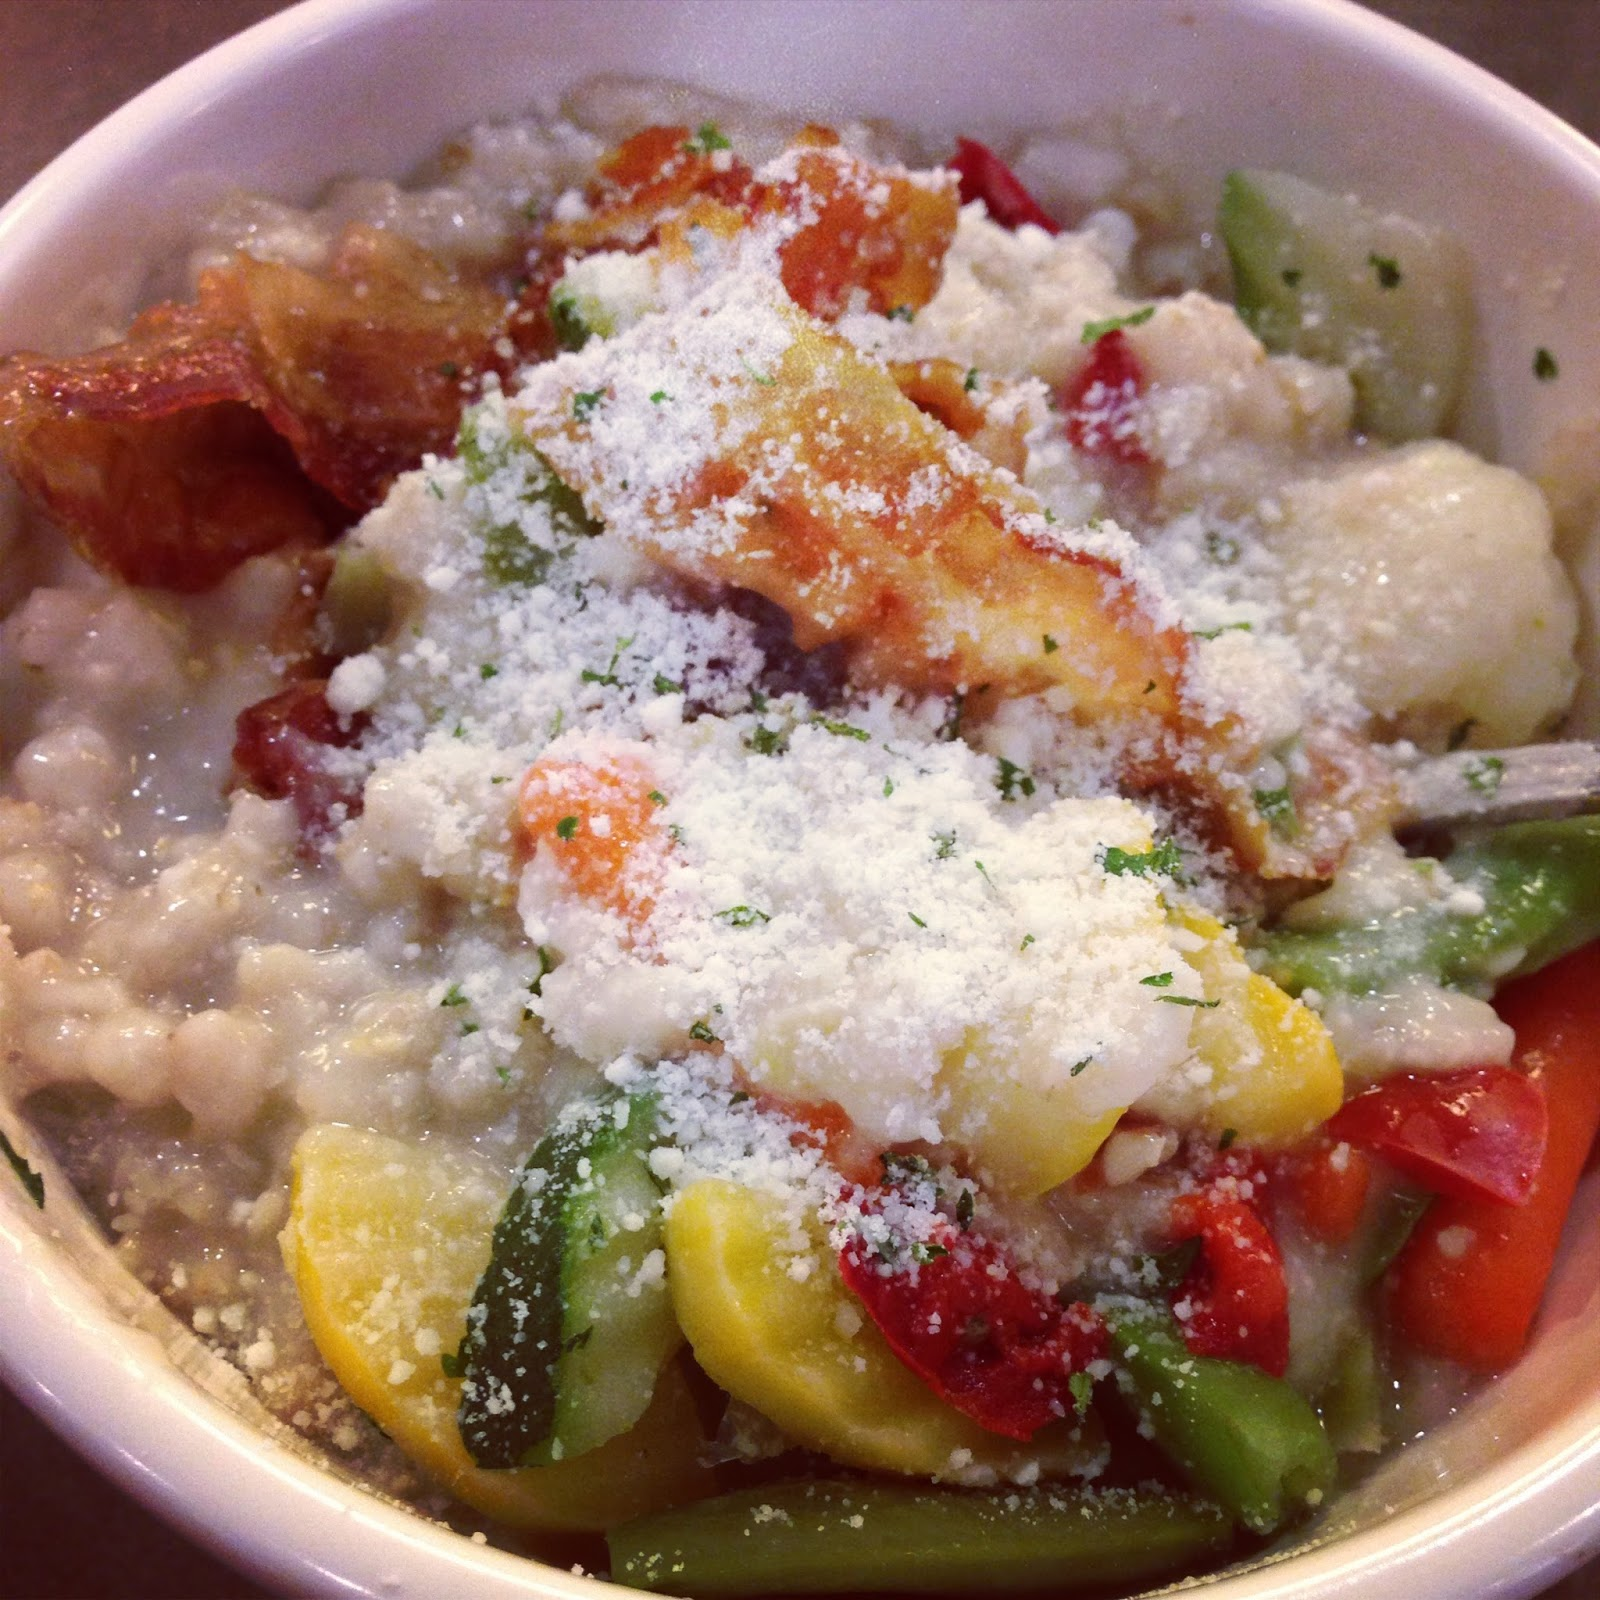 Savory Oatmeal with Bacon, Mixed Steamed Vegetables, and Parmesan Cheese